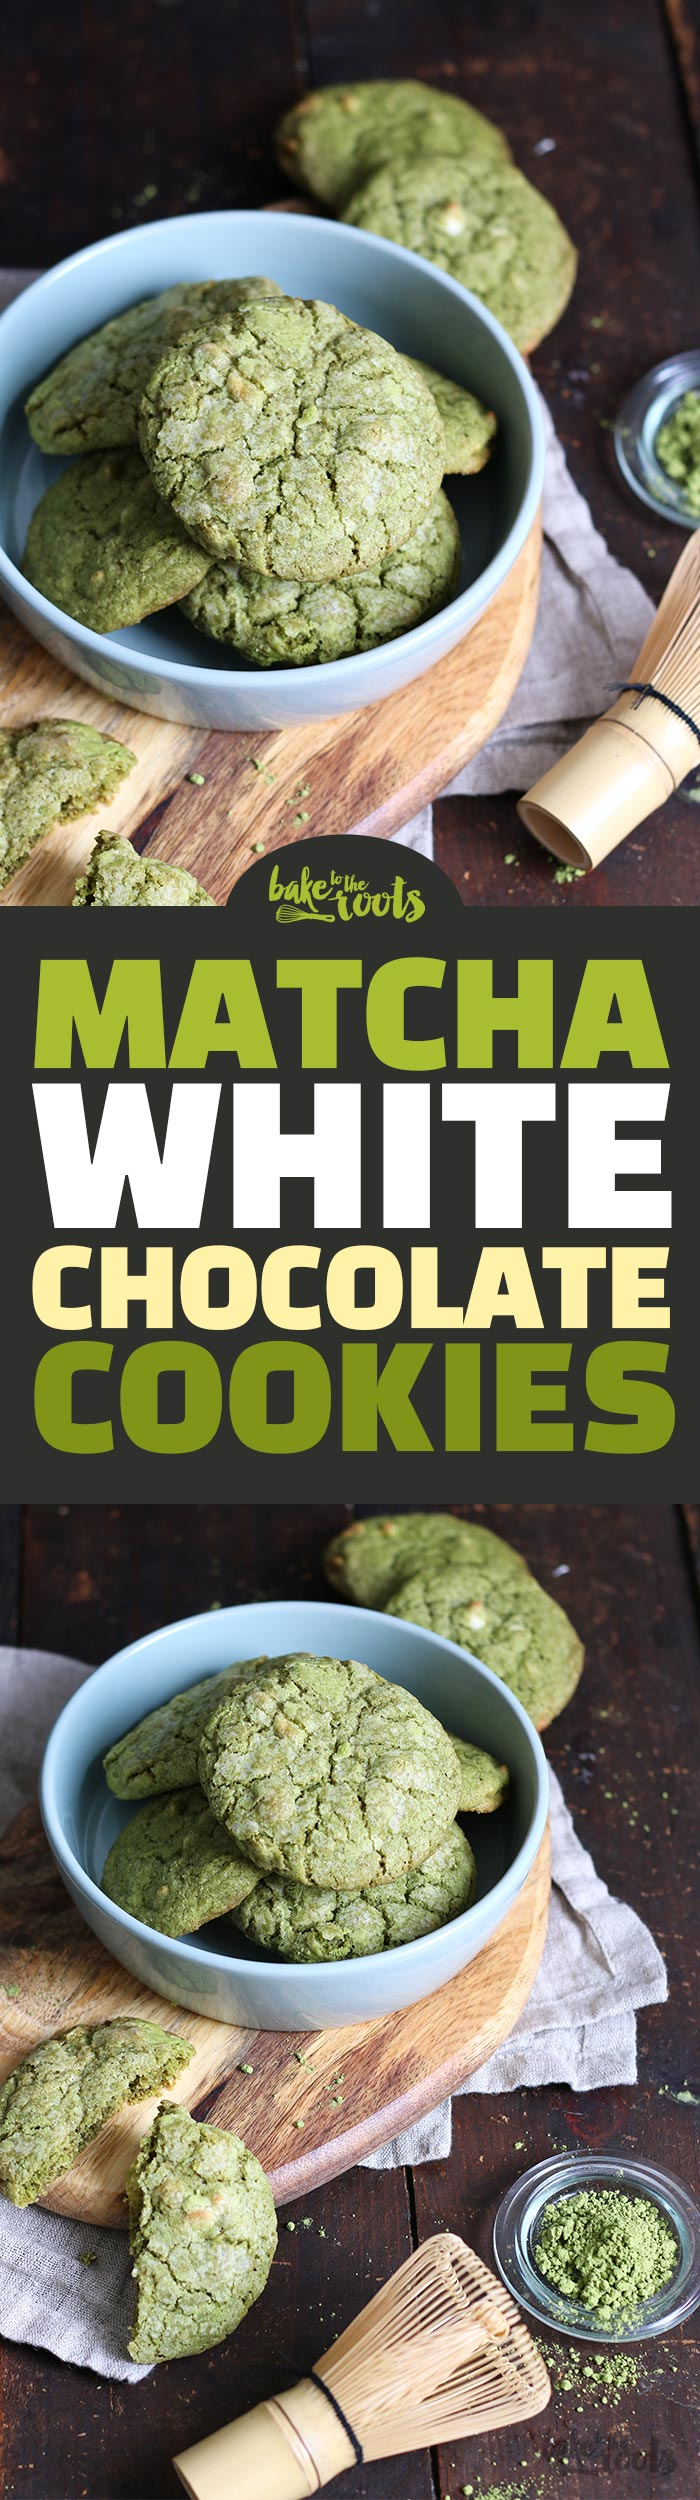 Matcha White Chocolate Cookies | Bake to the roots